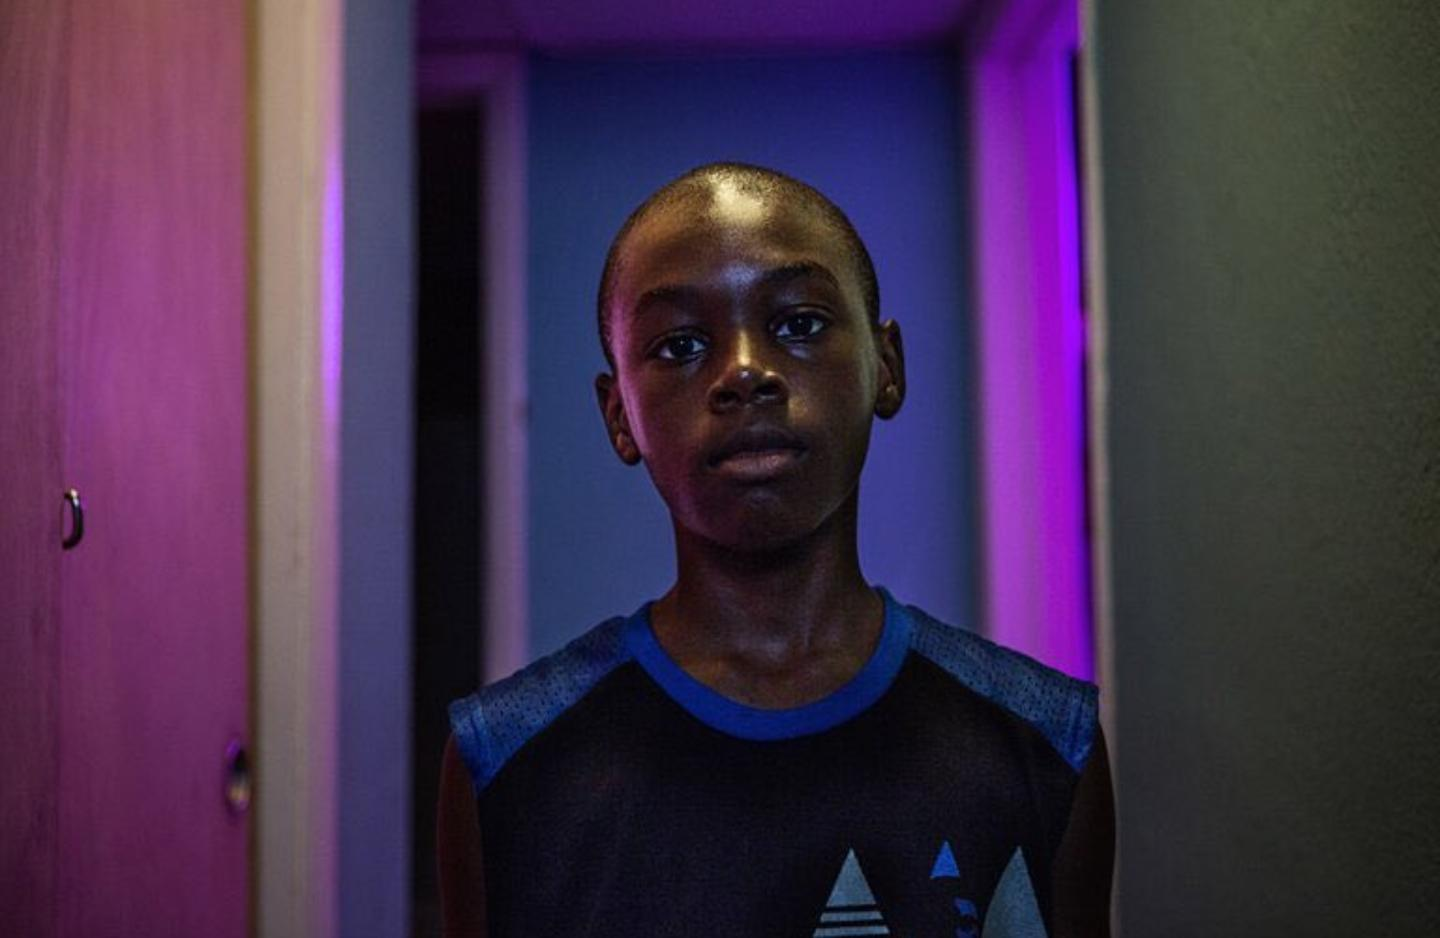 Low Key Lighting: Moonlight (2016) James Laxton DP  Link to article about the cinematographer